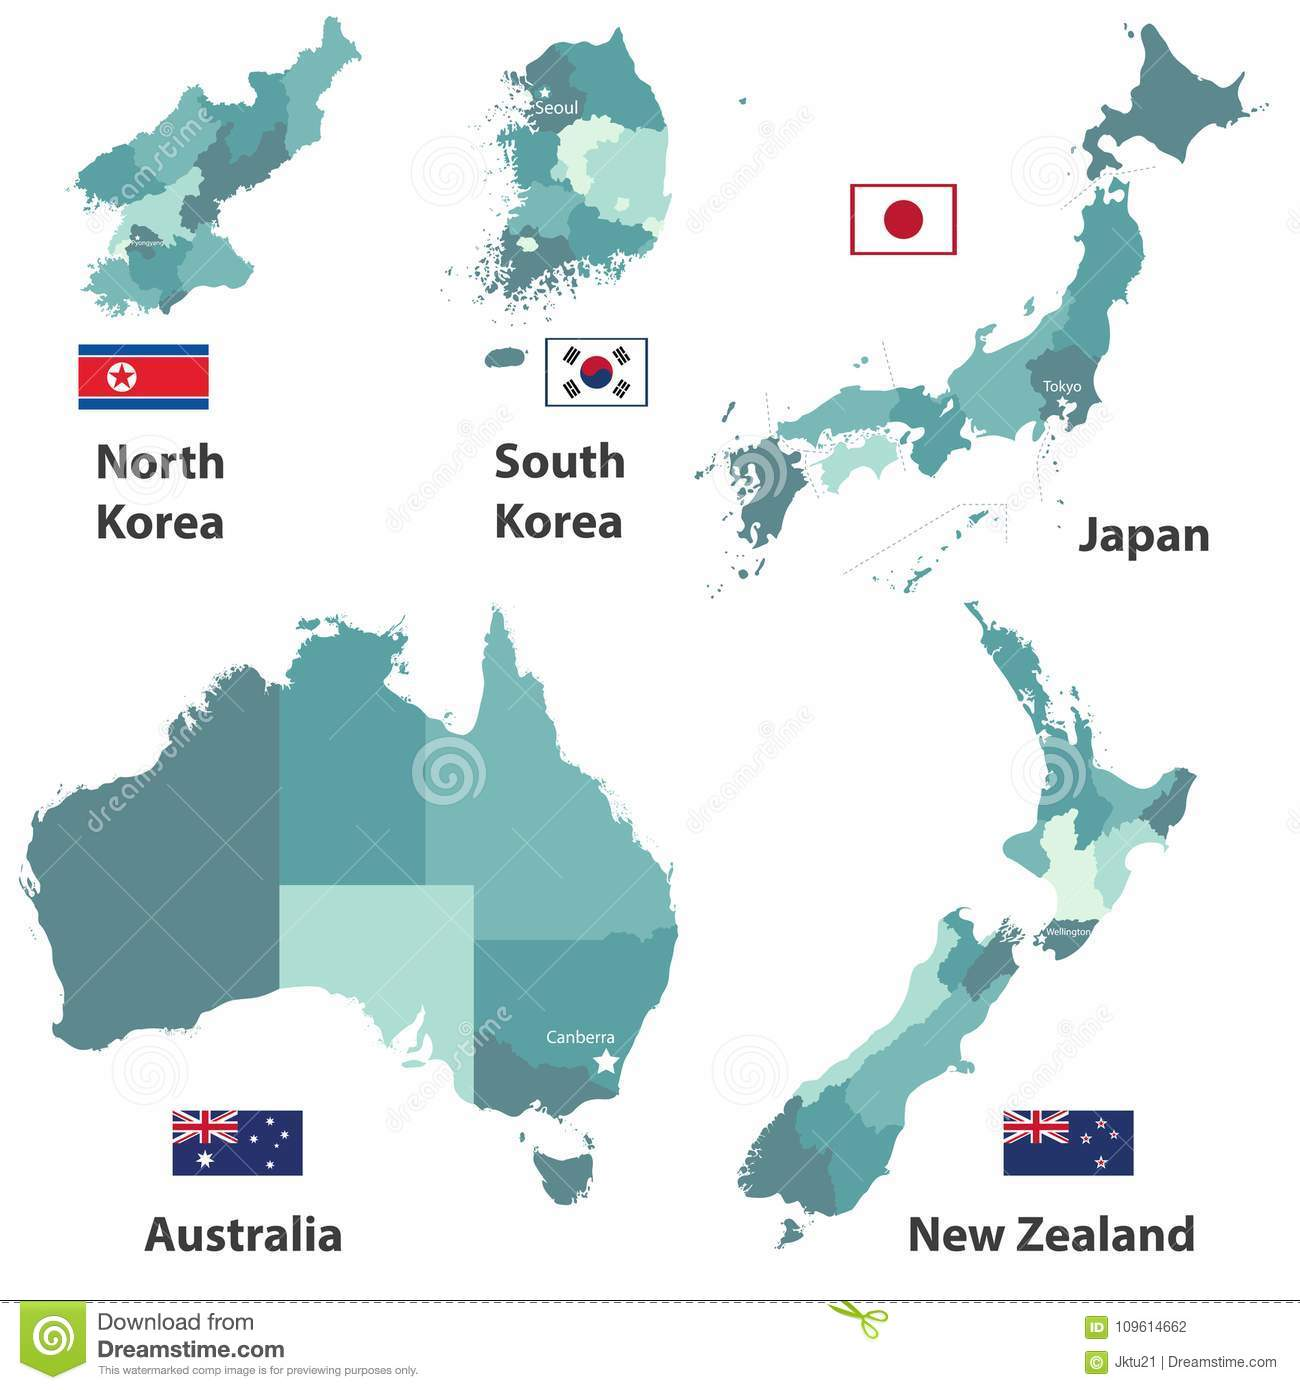 Map Showing Australia And New Zealand.Vector Maps And Flags Of Japan North Korea South Korea Australia